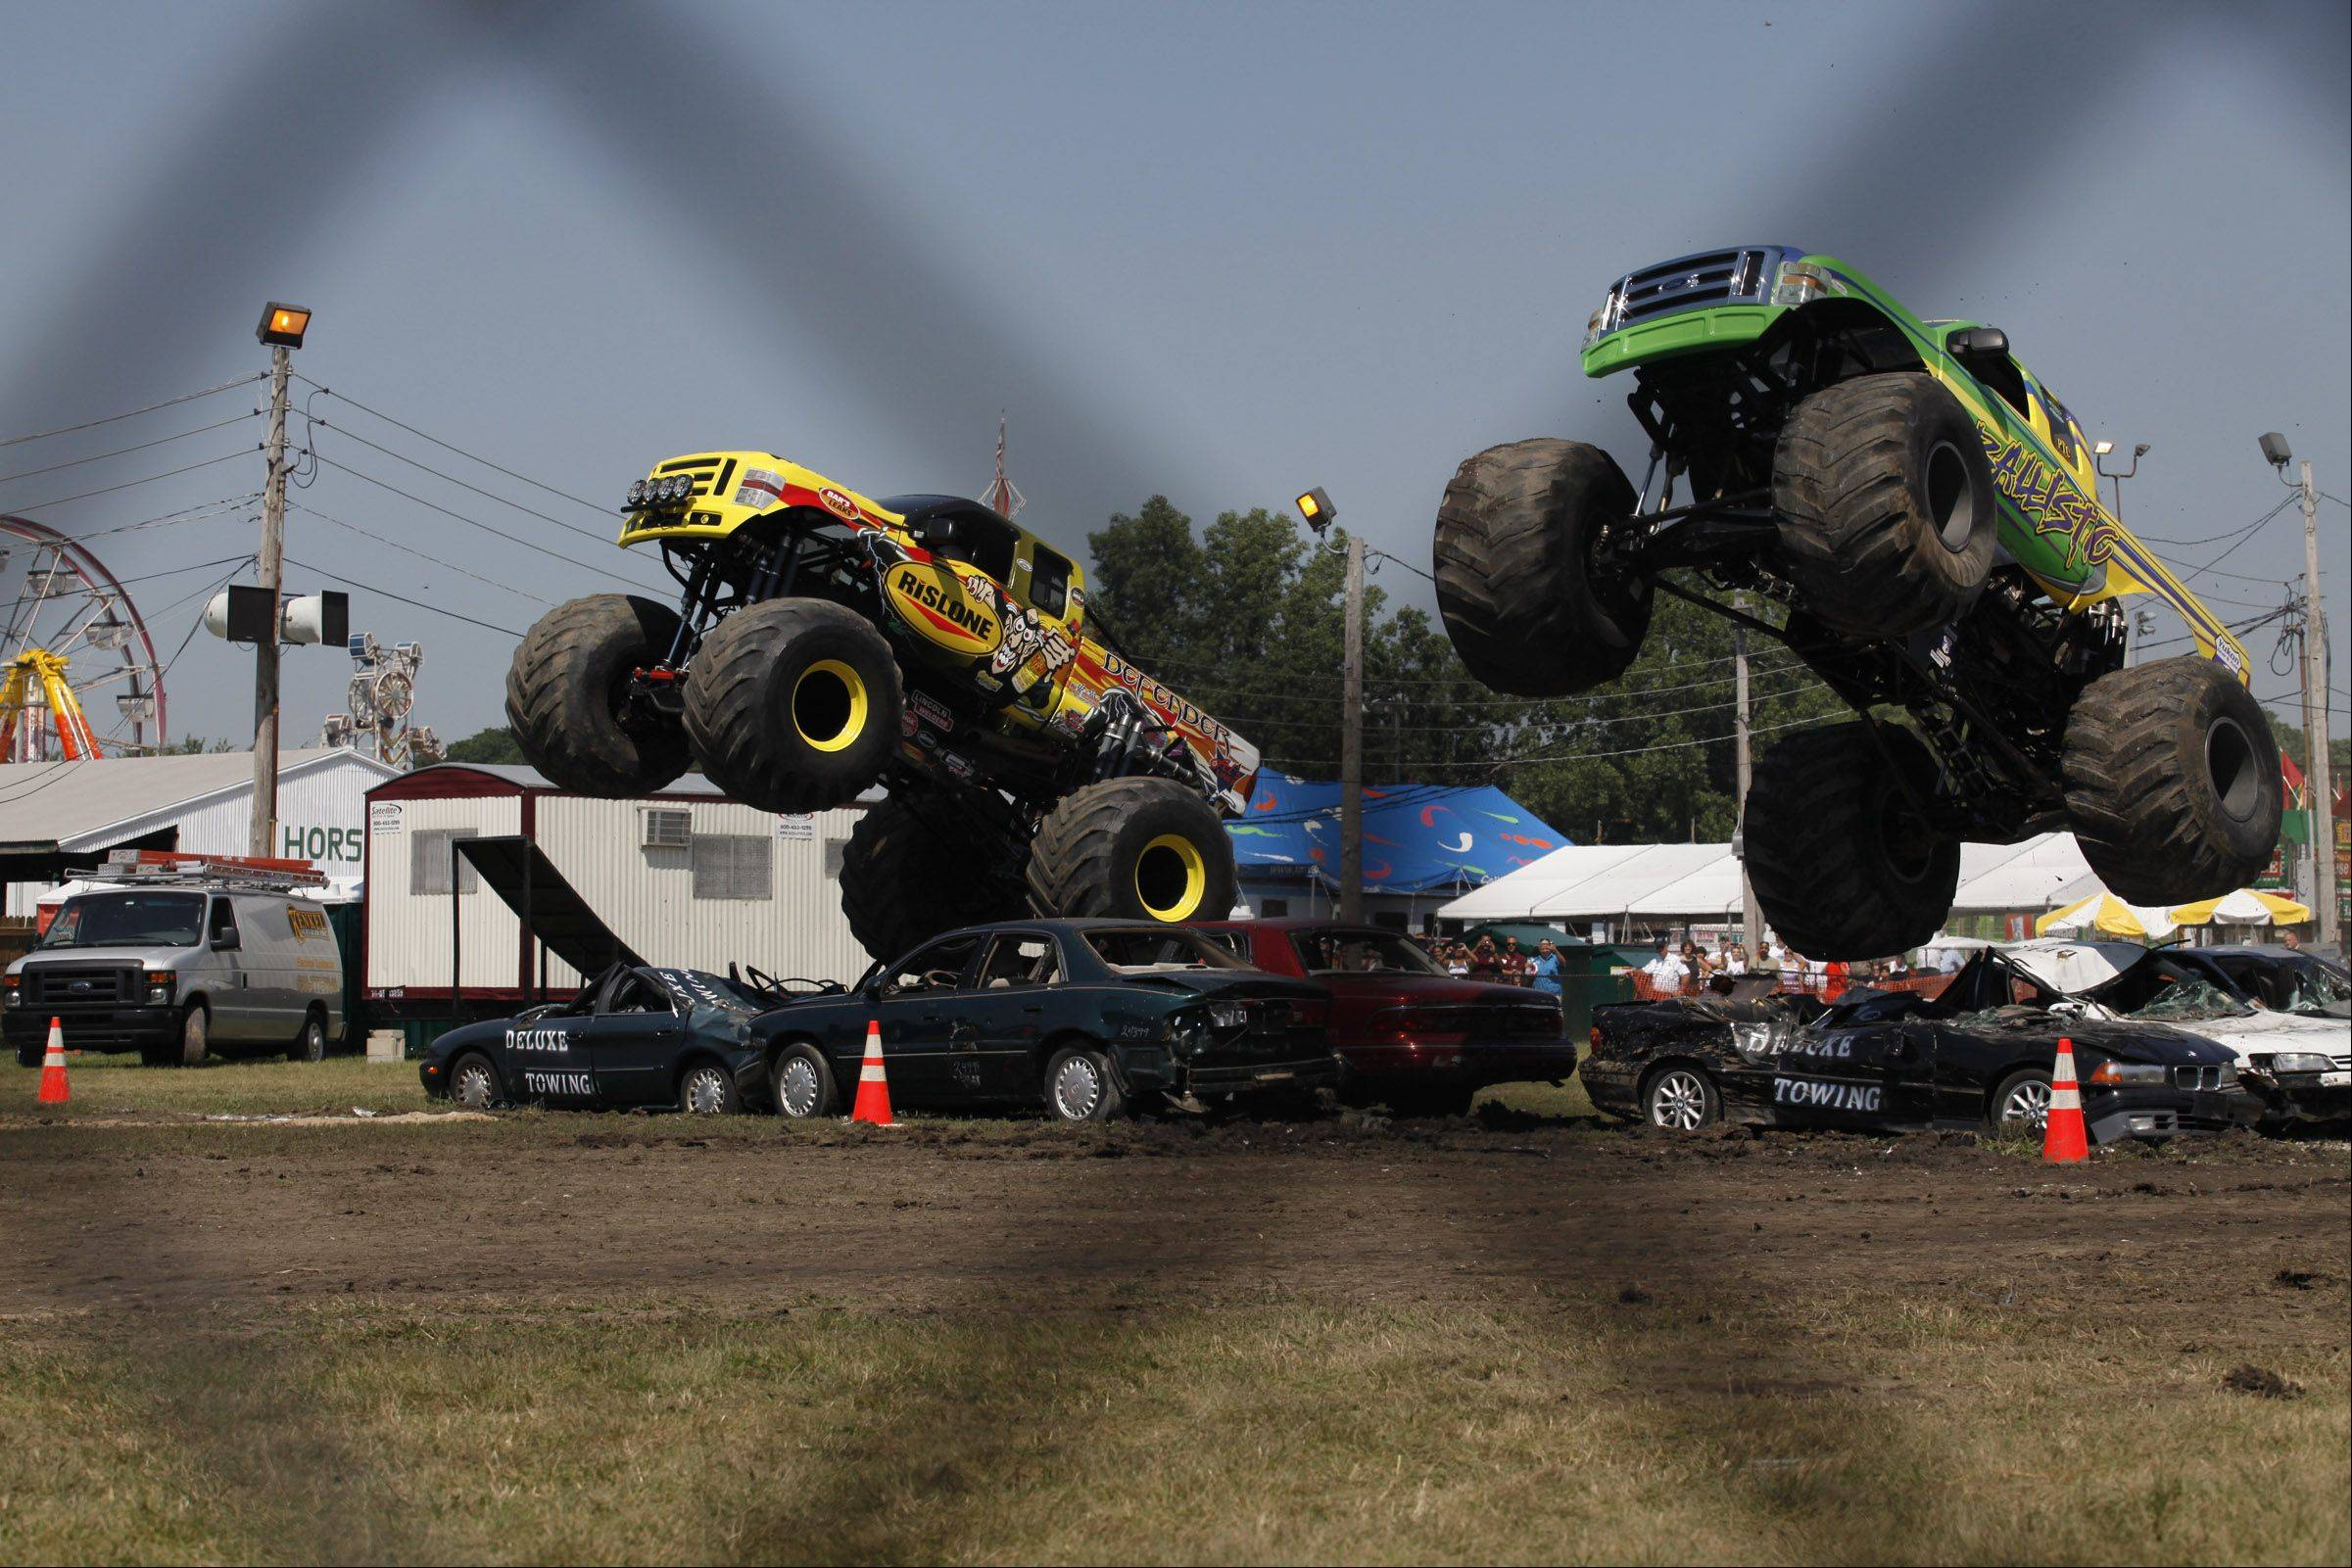 Rick Majewski/rmajewski@dailyherald.comDefender and Ballistic go head to head in a race over some cars in the DuPage County Fairs monster truck show in Wheaton. Saturday July 30th 2011.